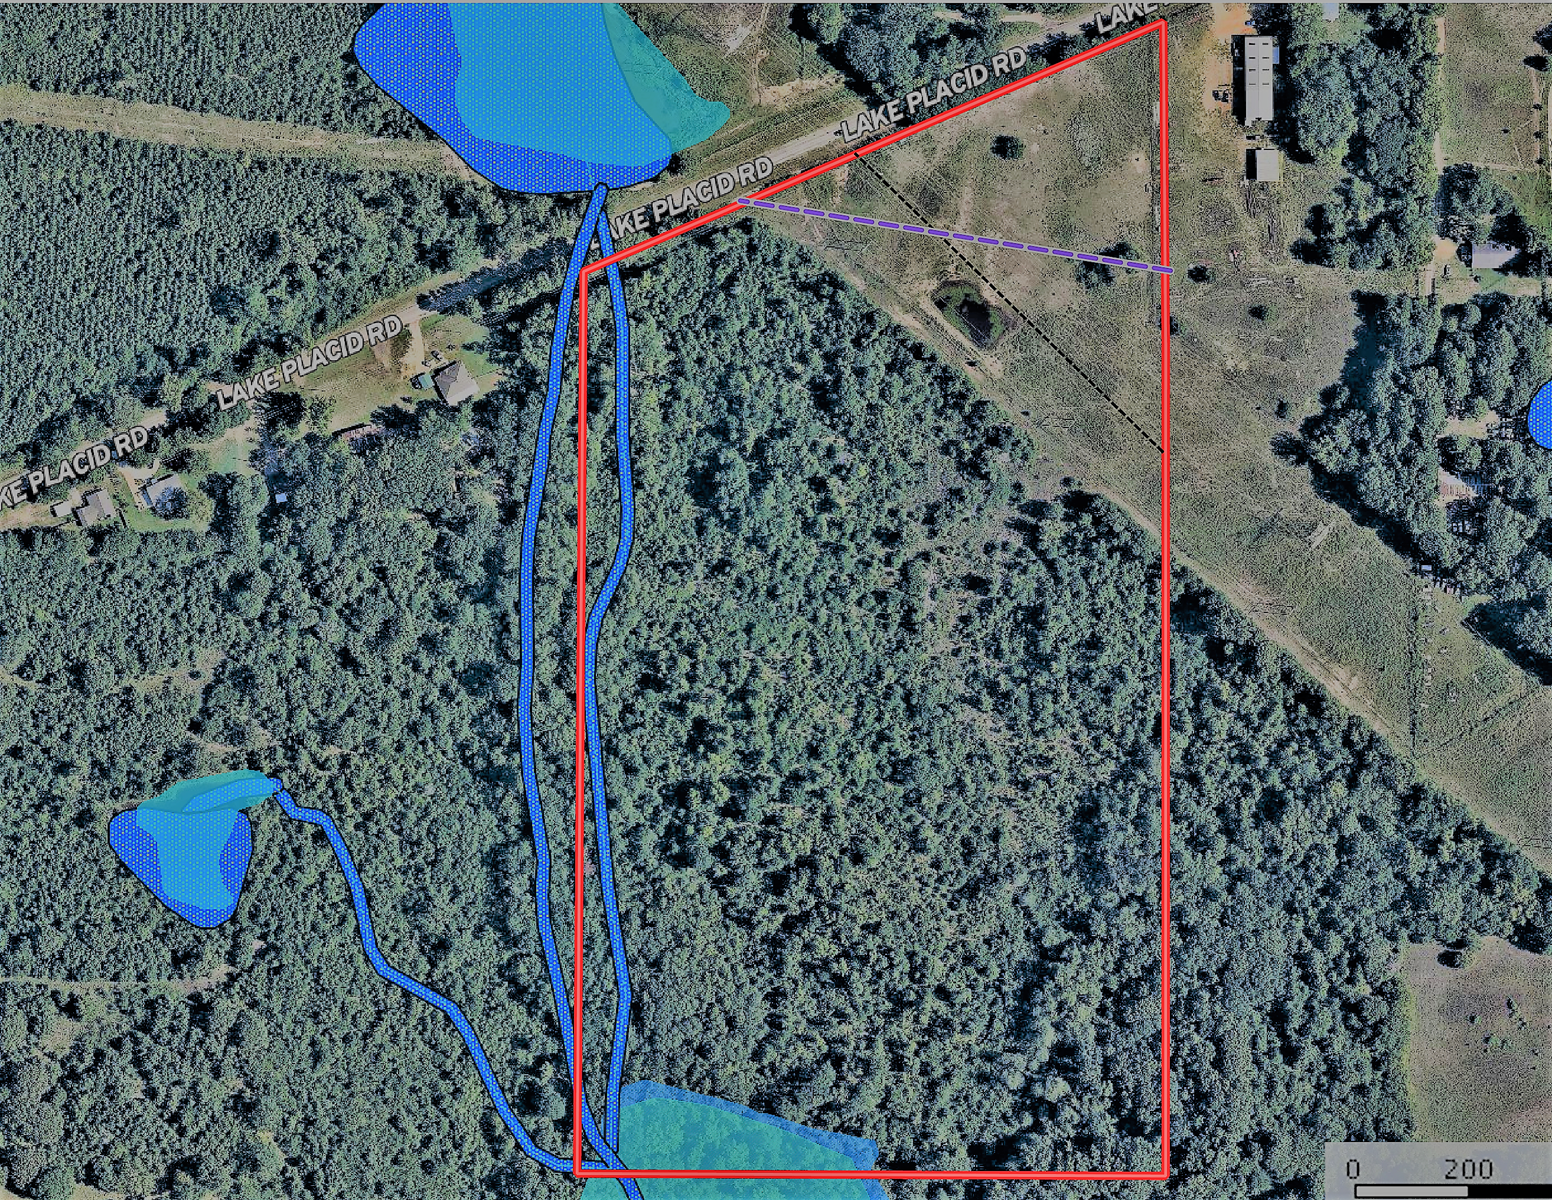 Land For Sale in East Texas in Tyler Smith County Texas